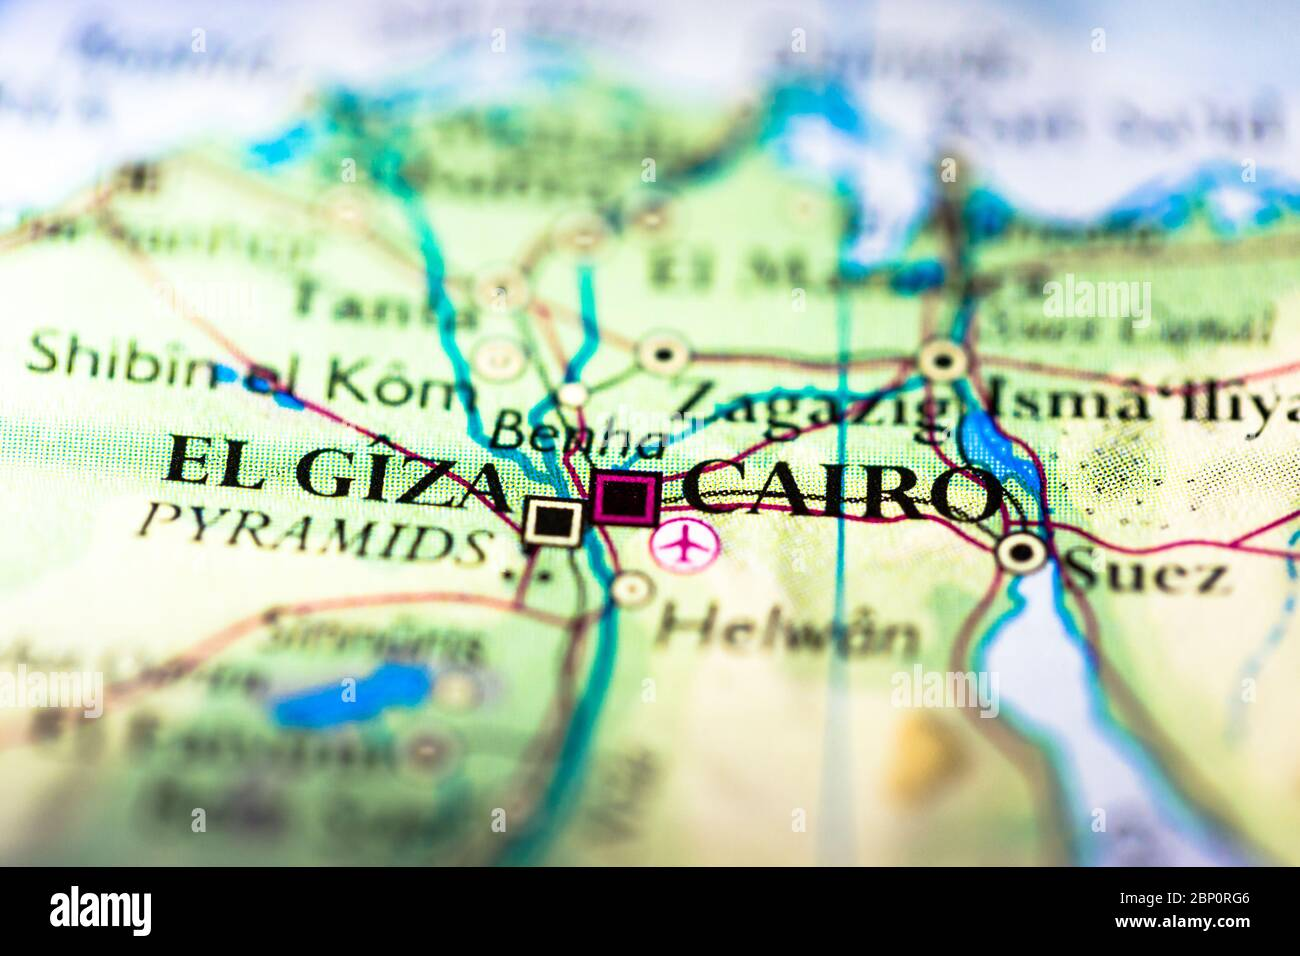 Picture of: Shallow Depth Of Field Focus On Geographical Map Location Of Cairo City In Egypt Arab Africa Continent On Atlas Stock Photo Alamy